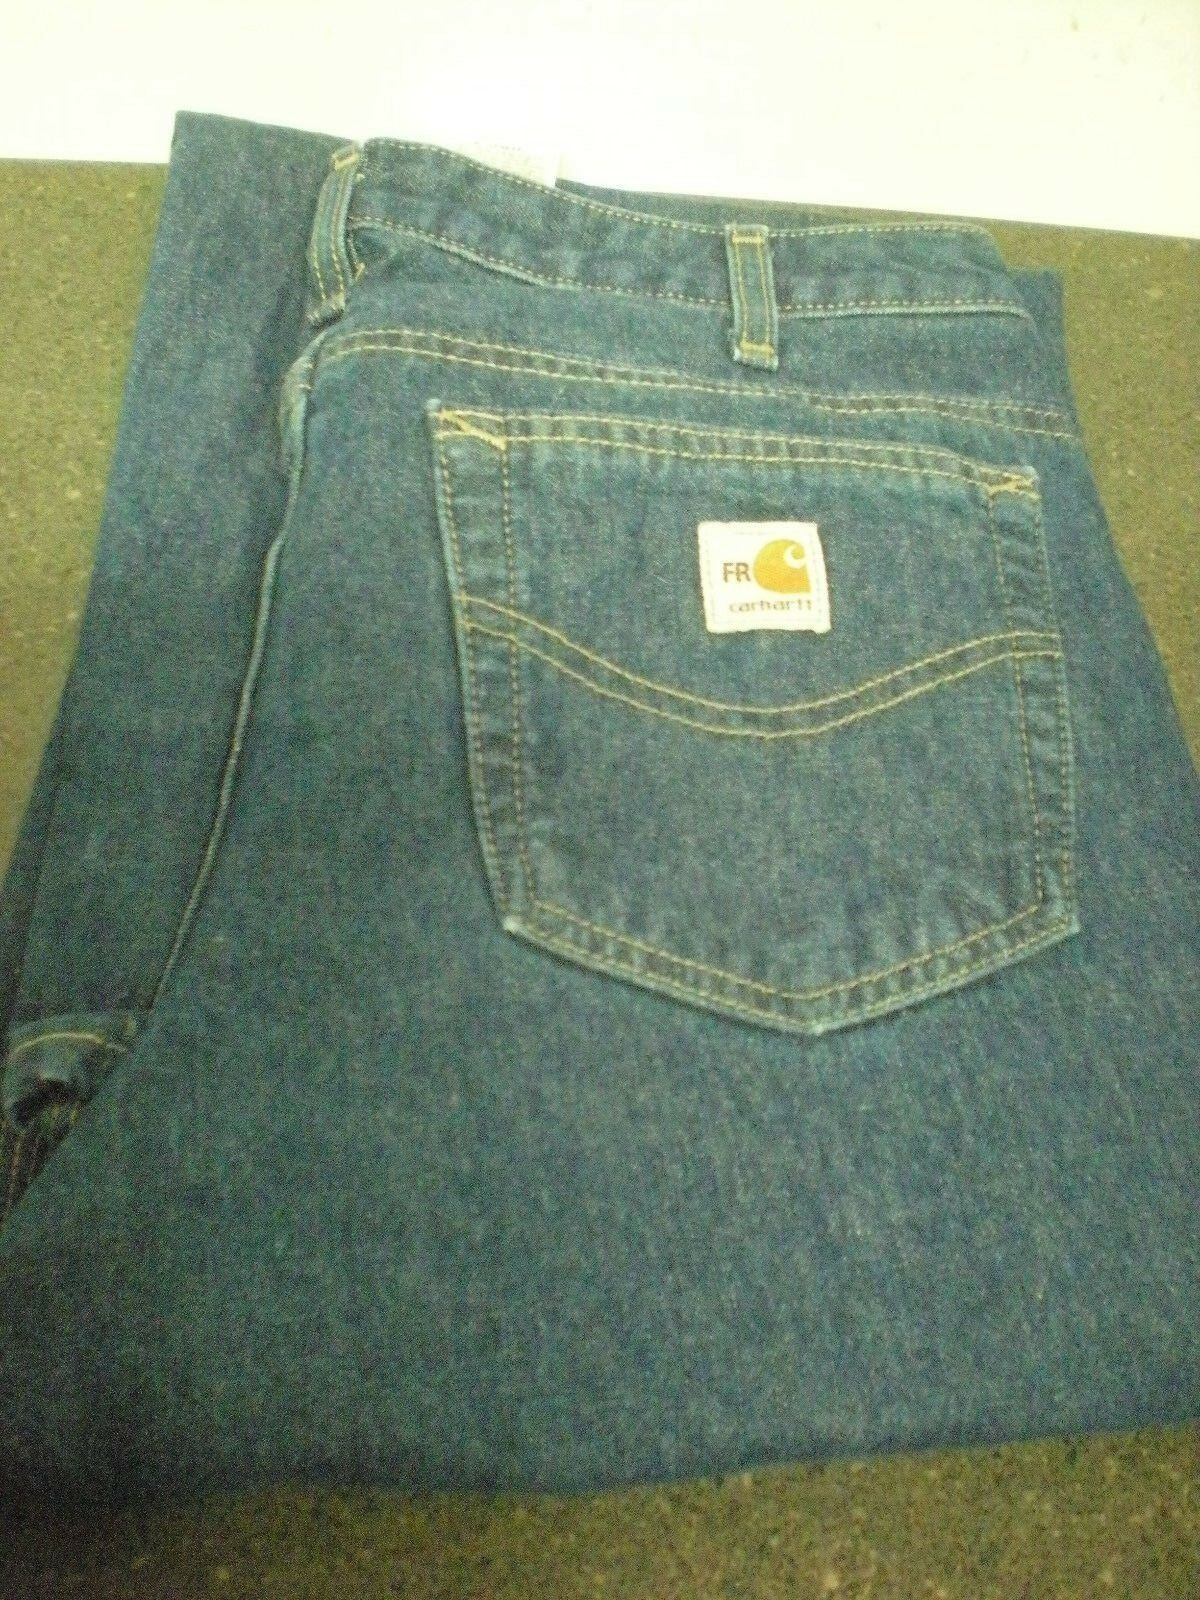 Carhartt FR Jeans Relaxed Fit Size 10x32 Womens 14806 VG Condition - A.90